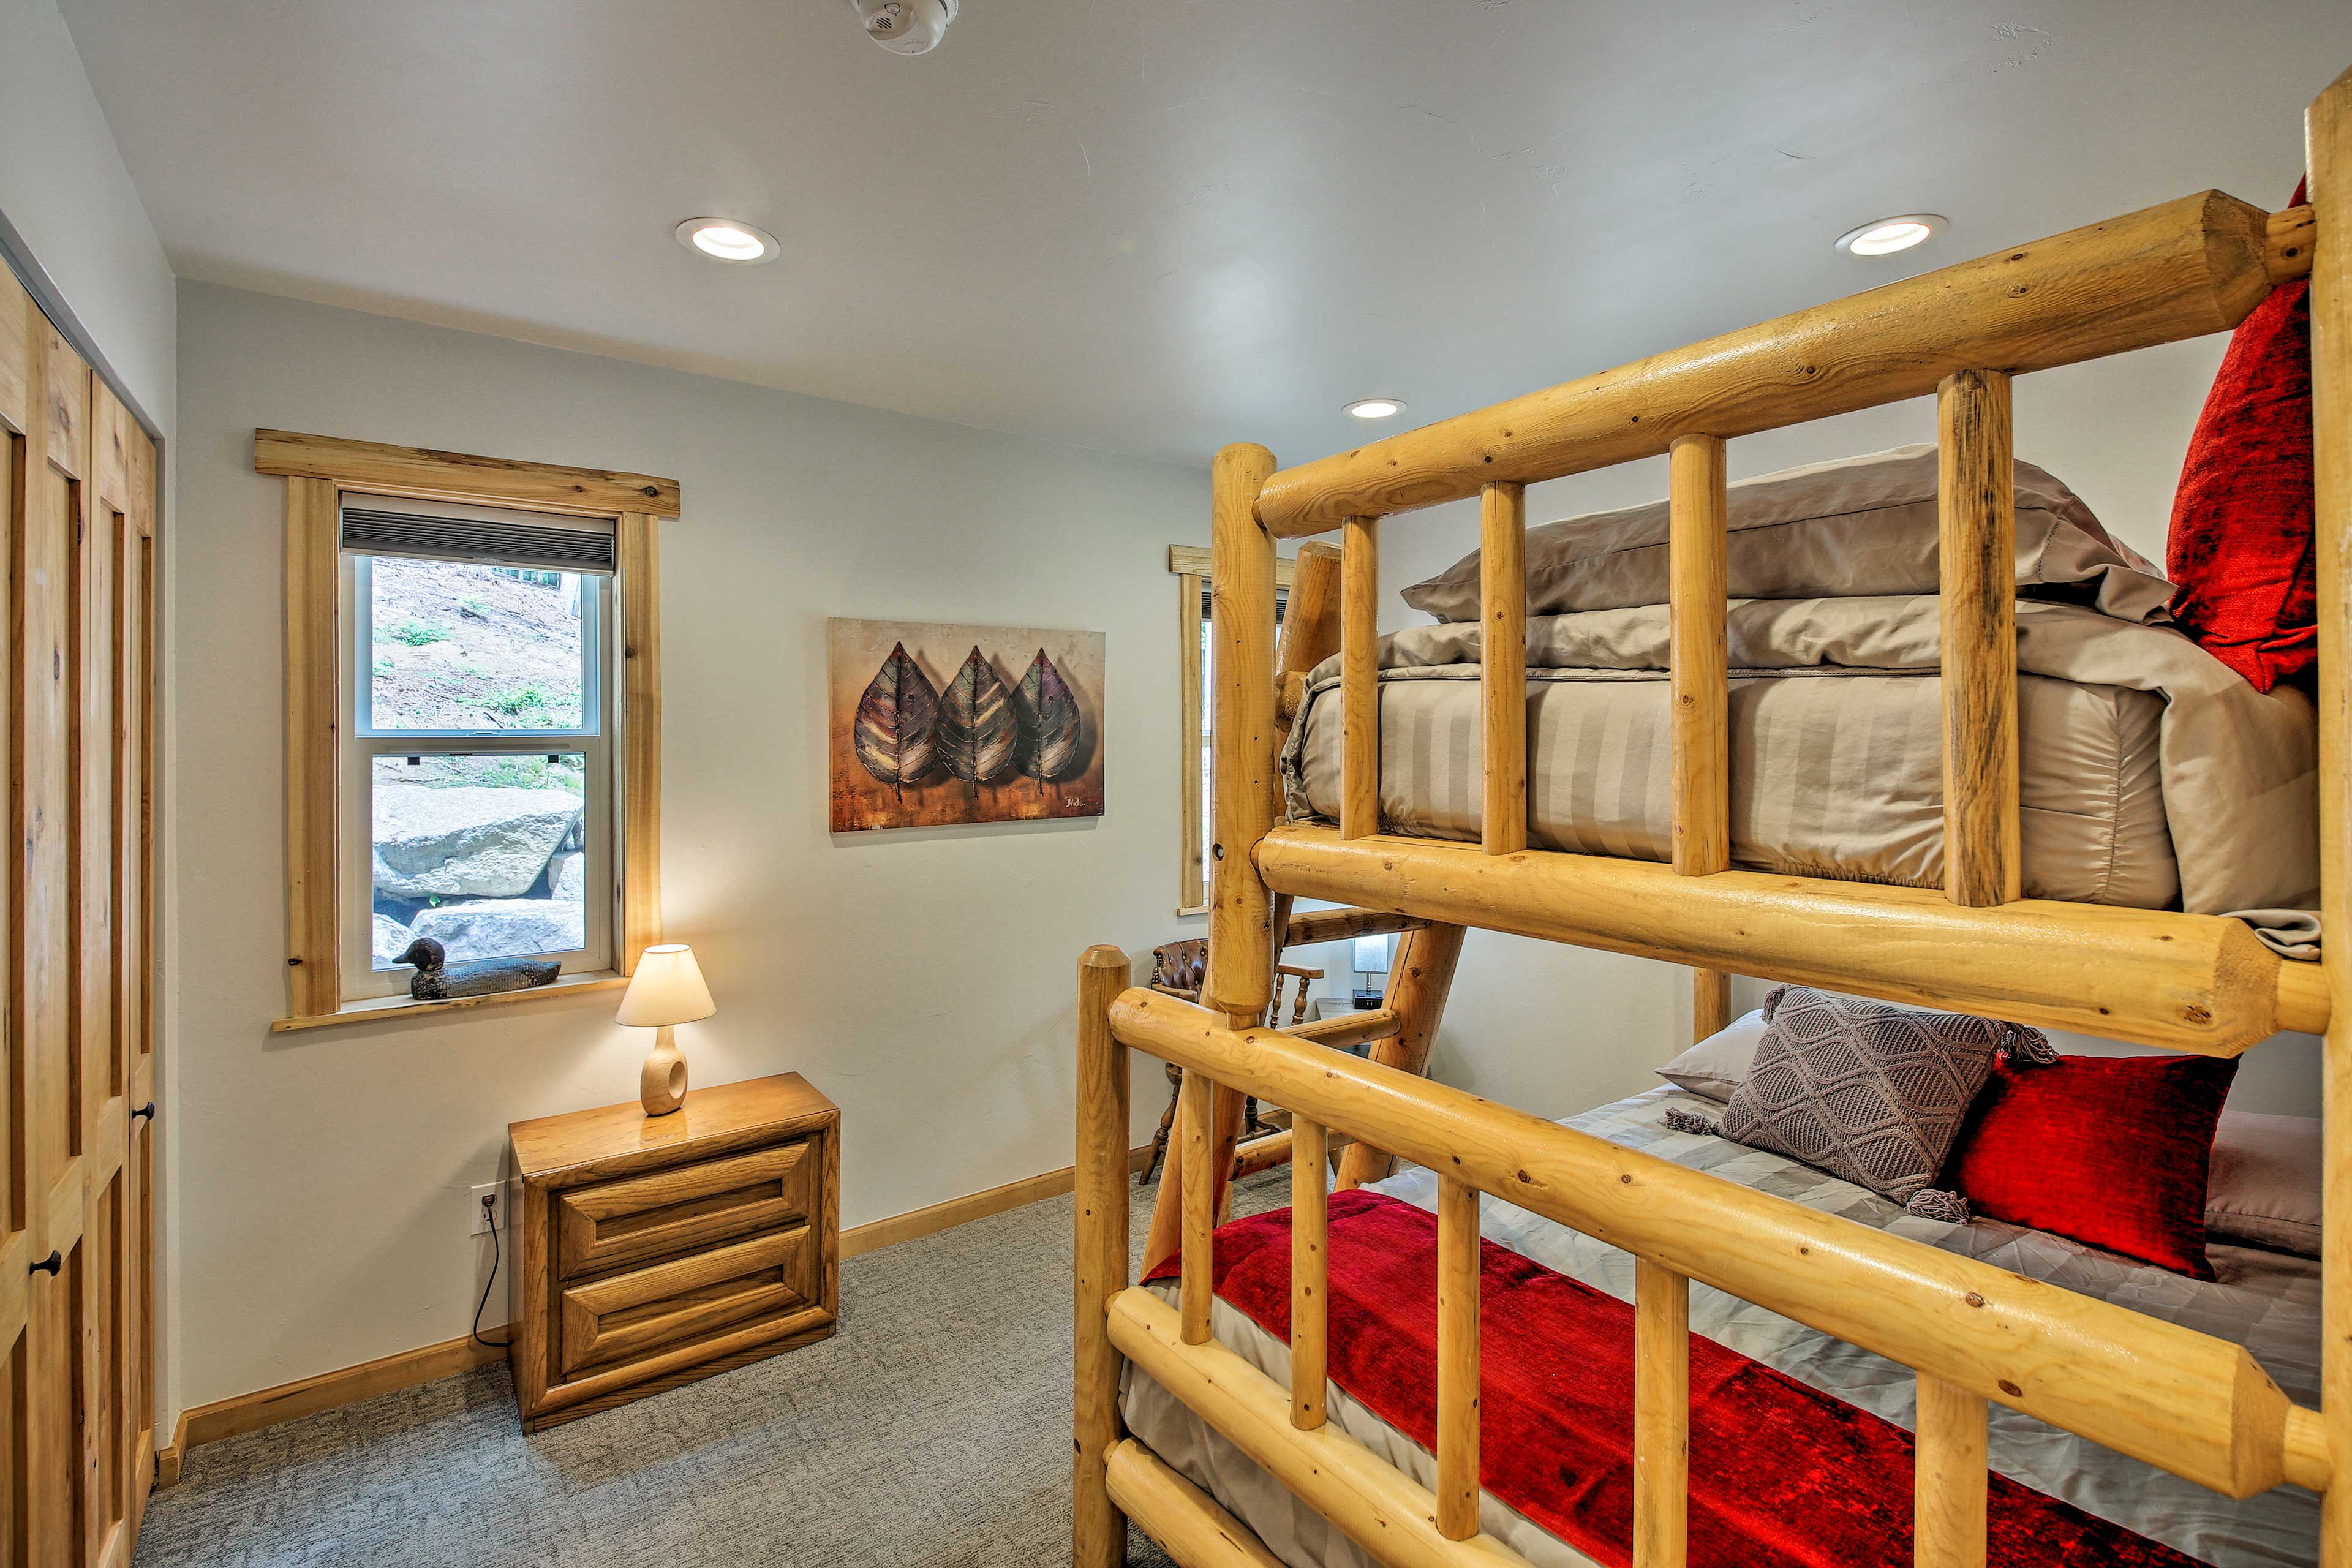 The cabin's third bedroom is ideal for your kiddos!